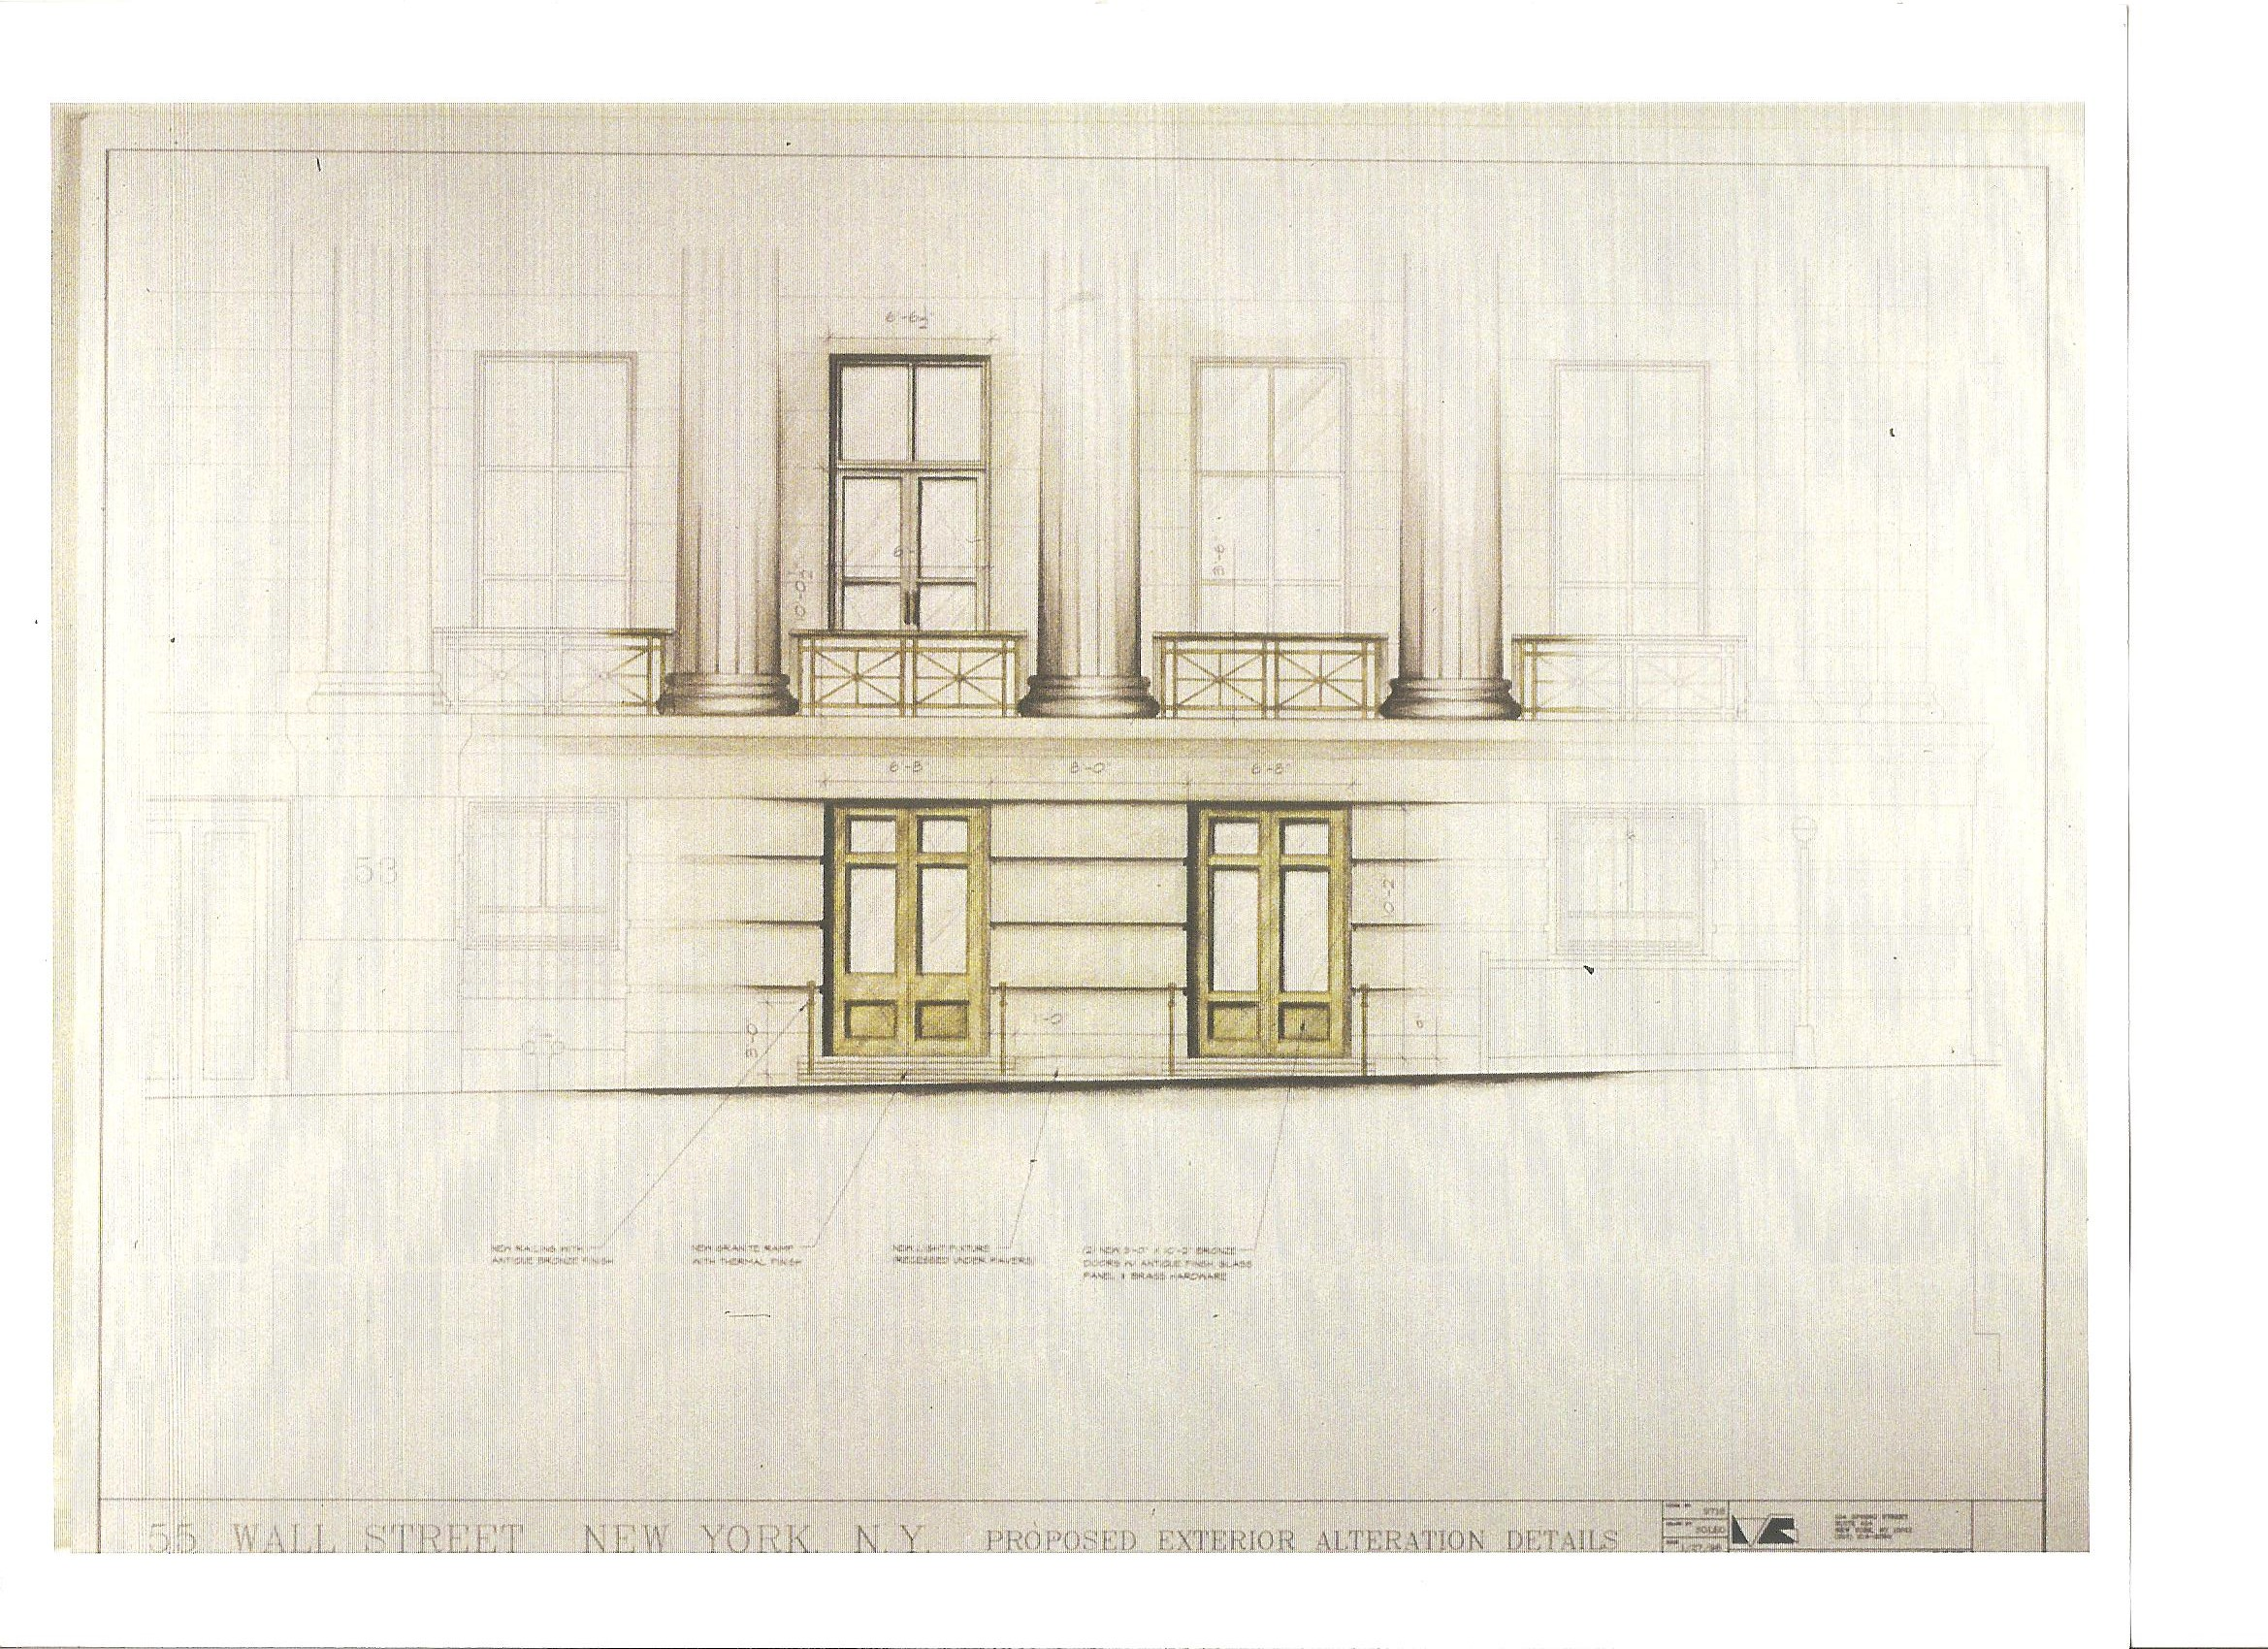 55 Wall St-proposed exterior atleration details.jpg